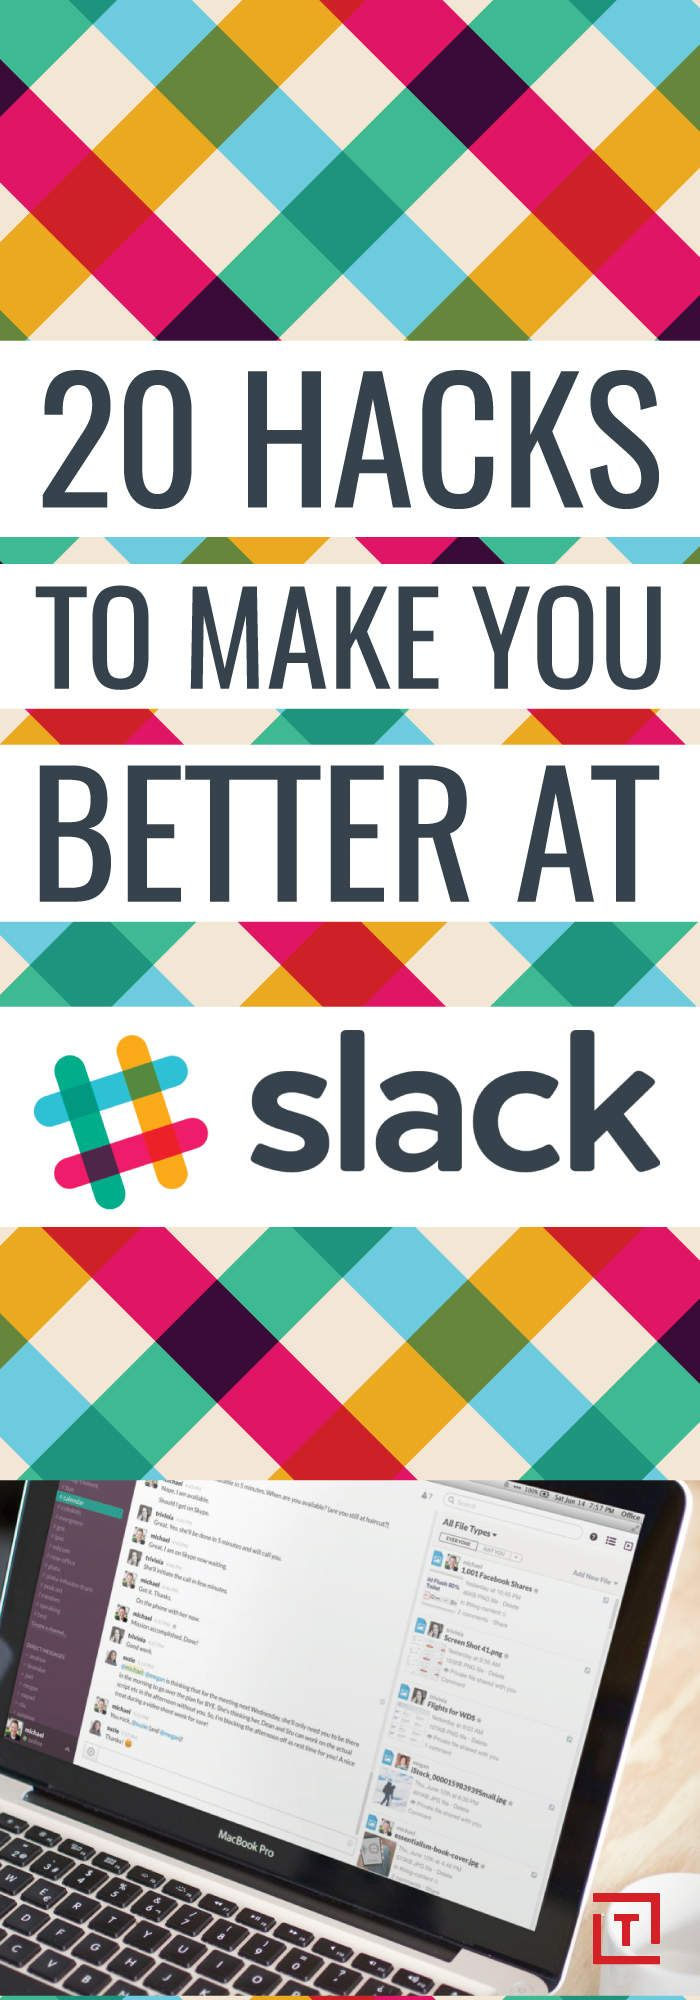 20 Hacks to Be Better at Slack